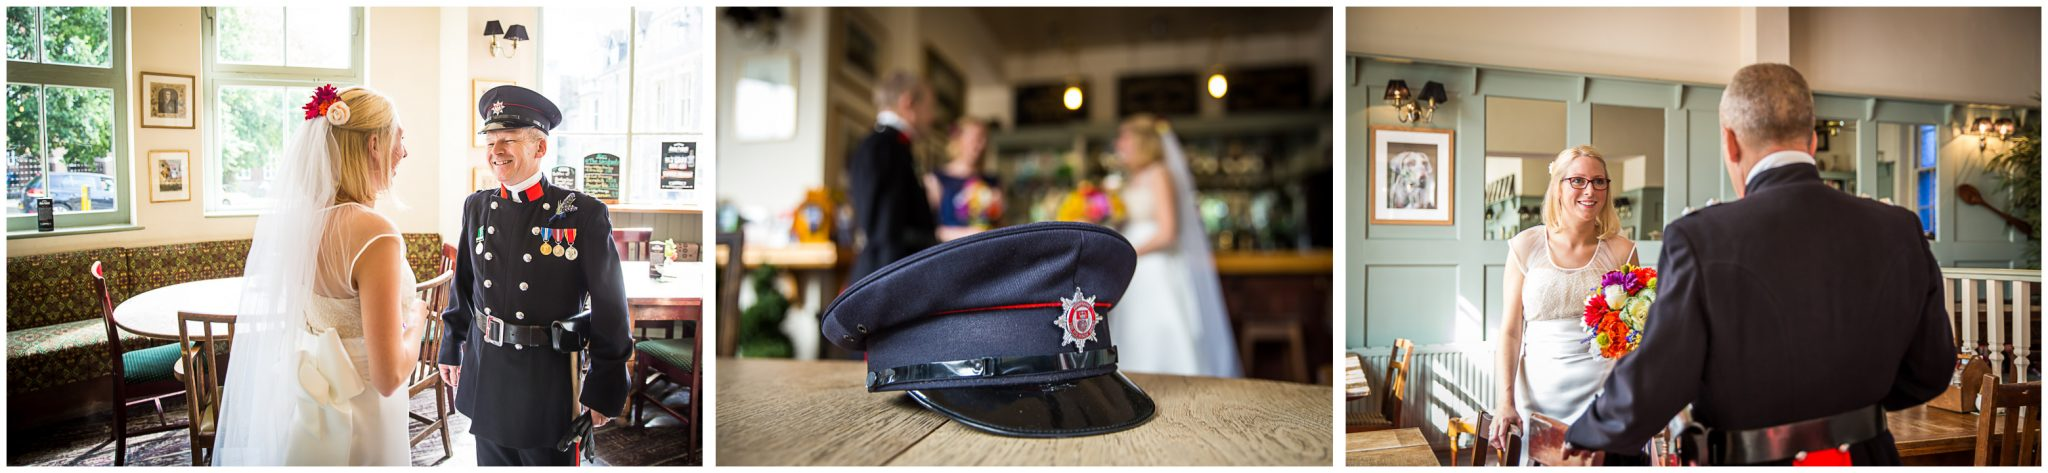 Winchester Great Hall wedding photography bride and father